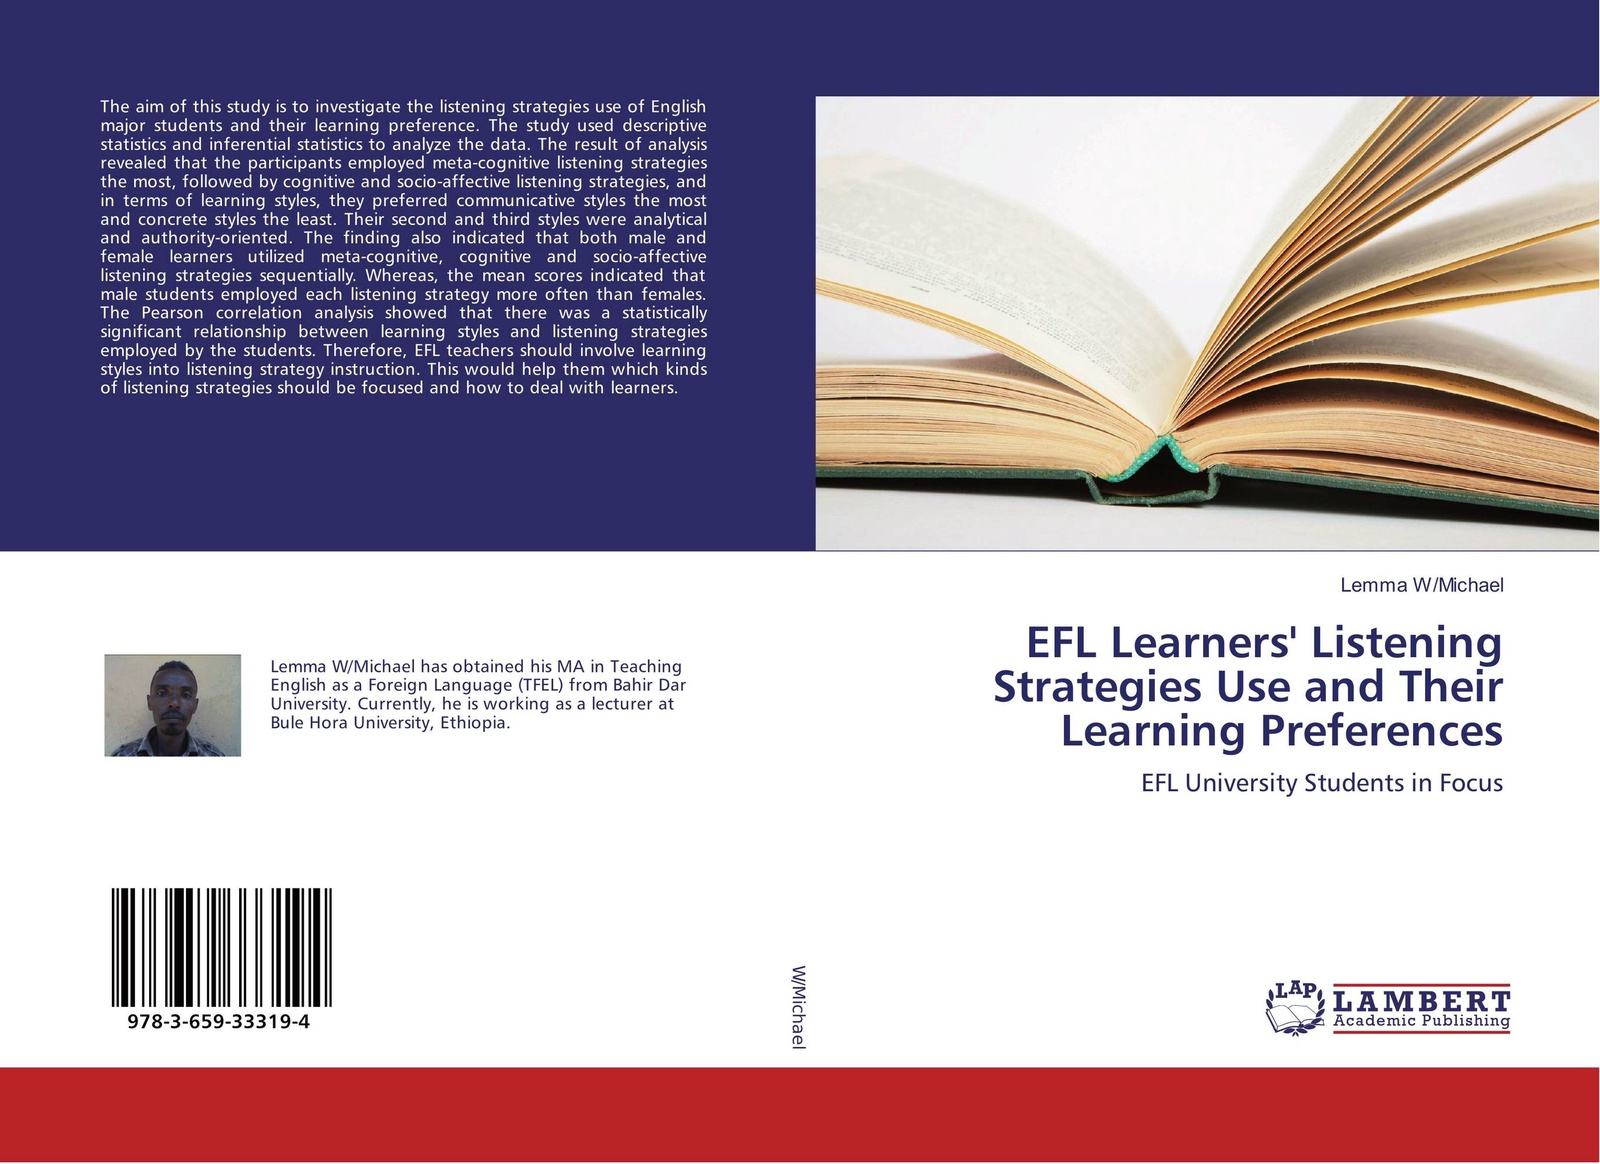 Lemma W/Michael EFL Learners' Listening Strategies Use and Their Learning Preferences цена